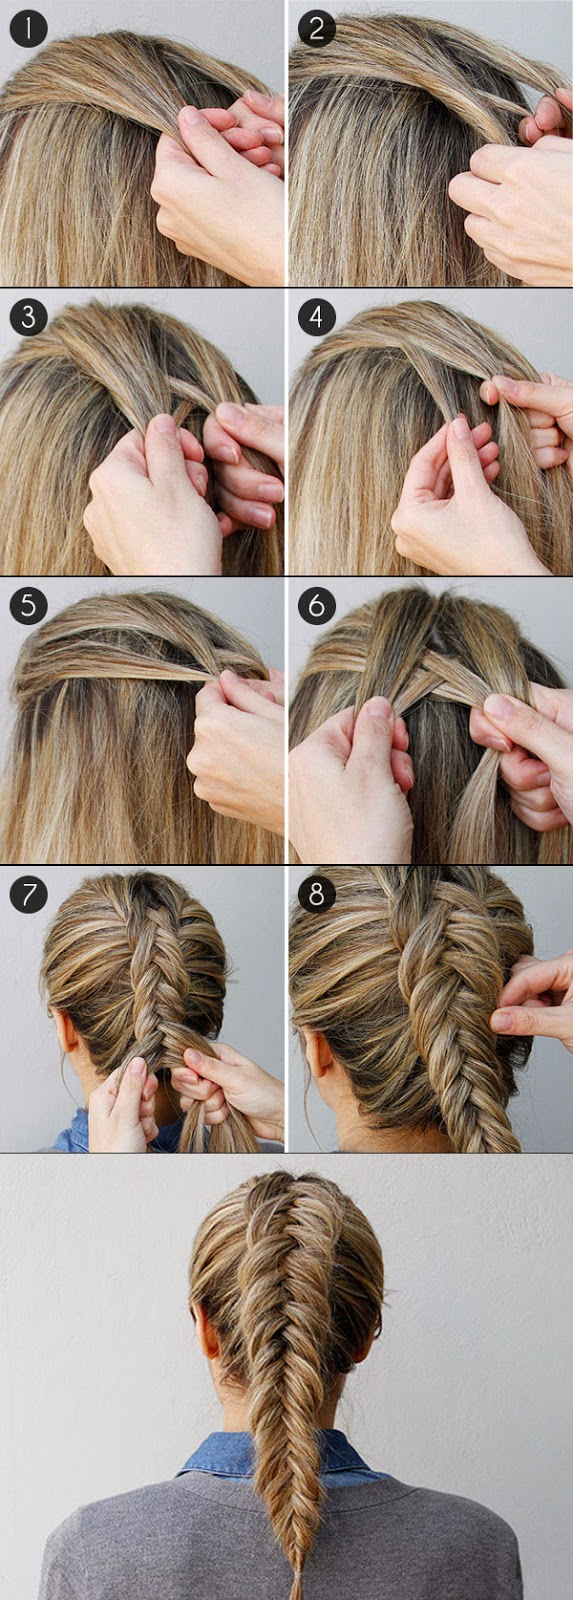 How to Fishtail Braid Your Own Hair? - Hairstyle Ideas ~ Calgary ...